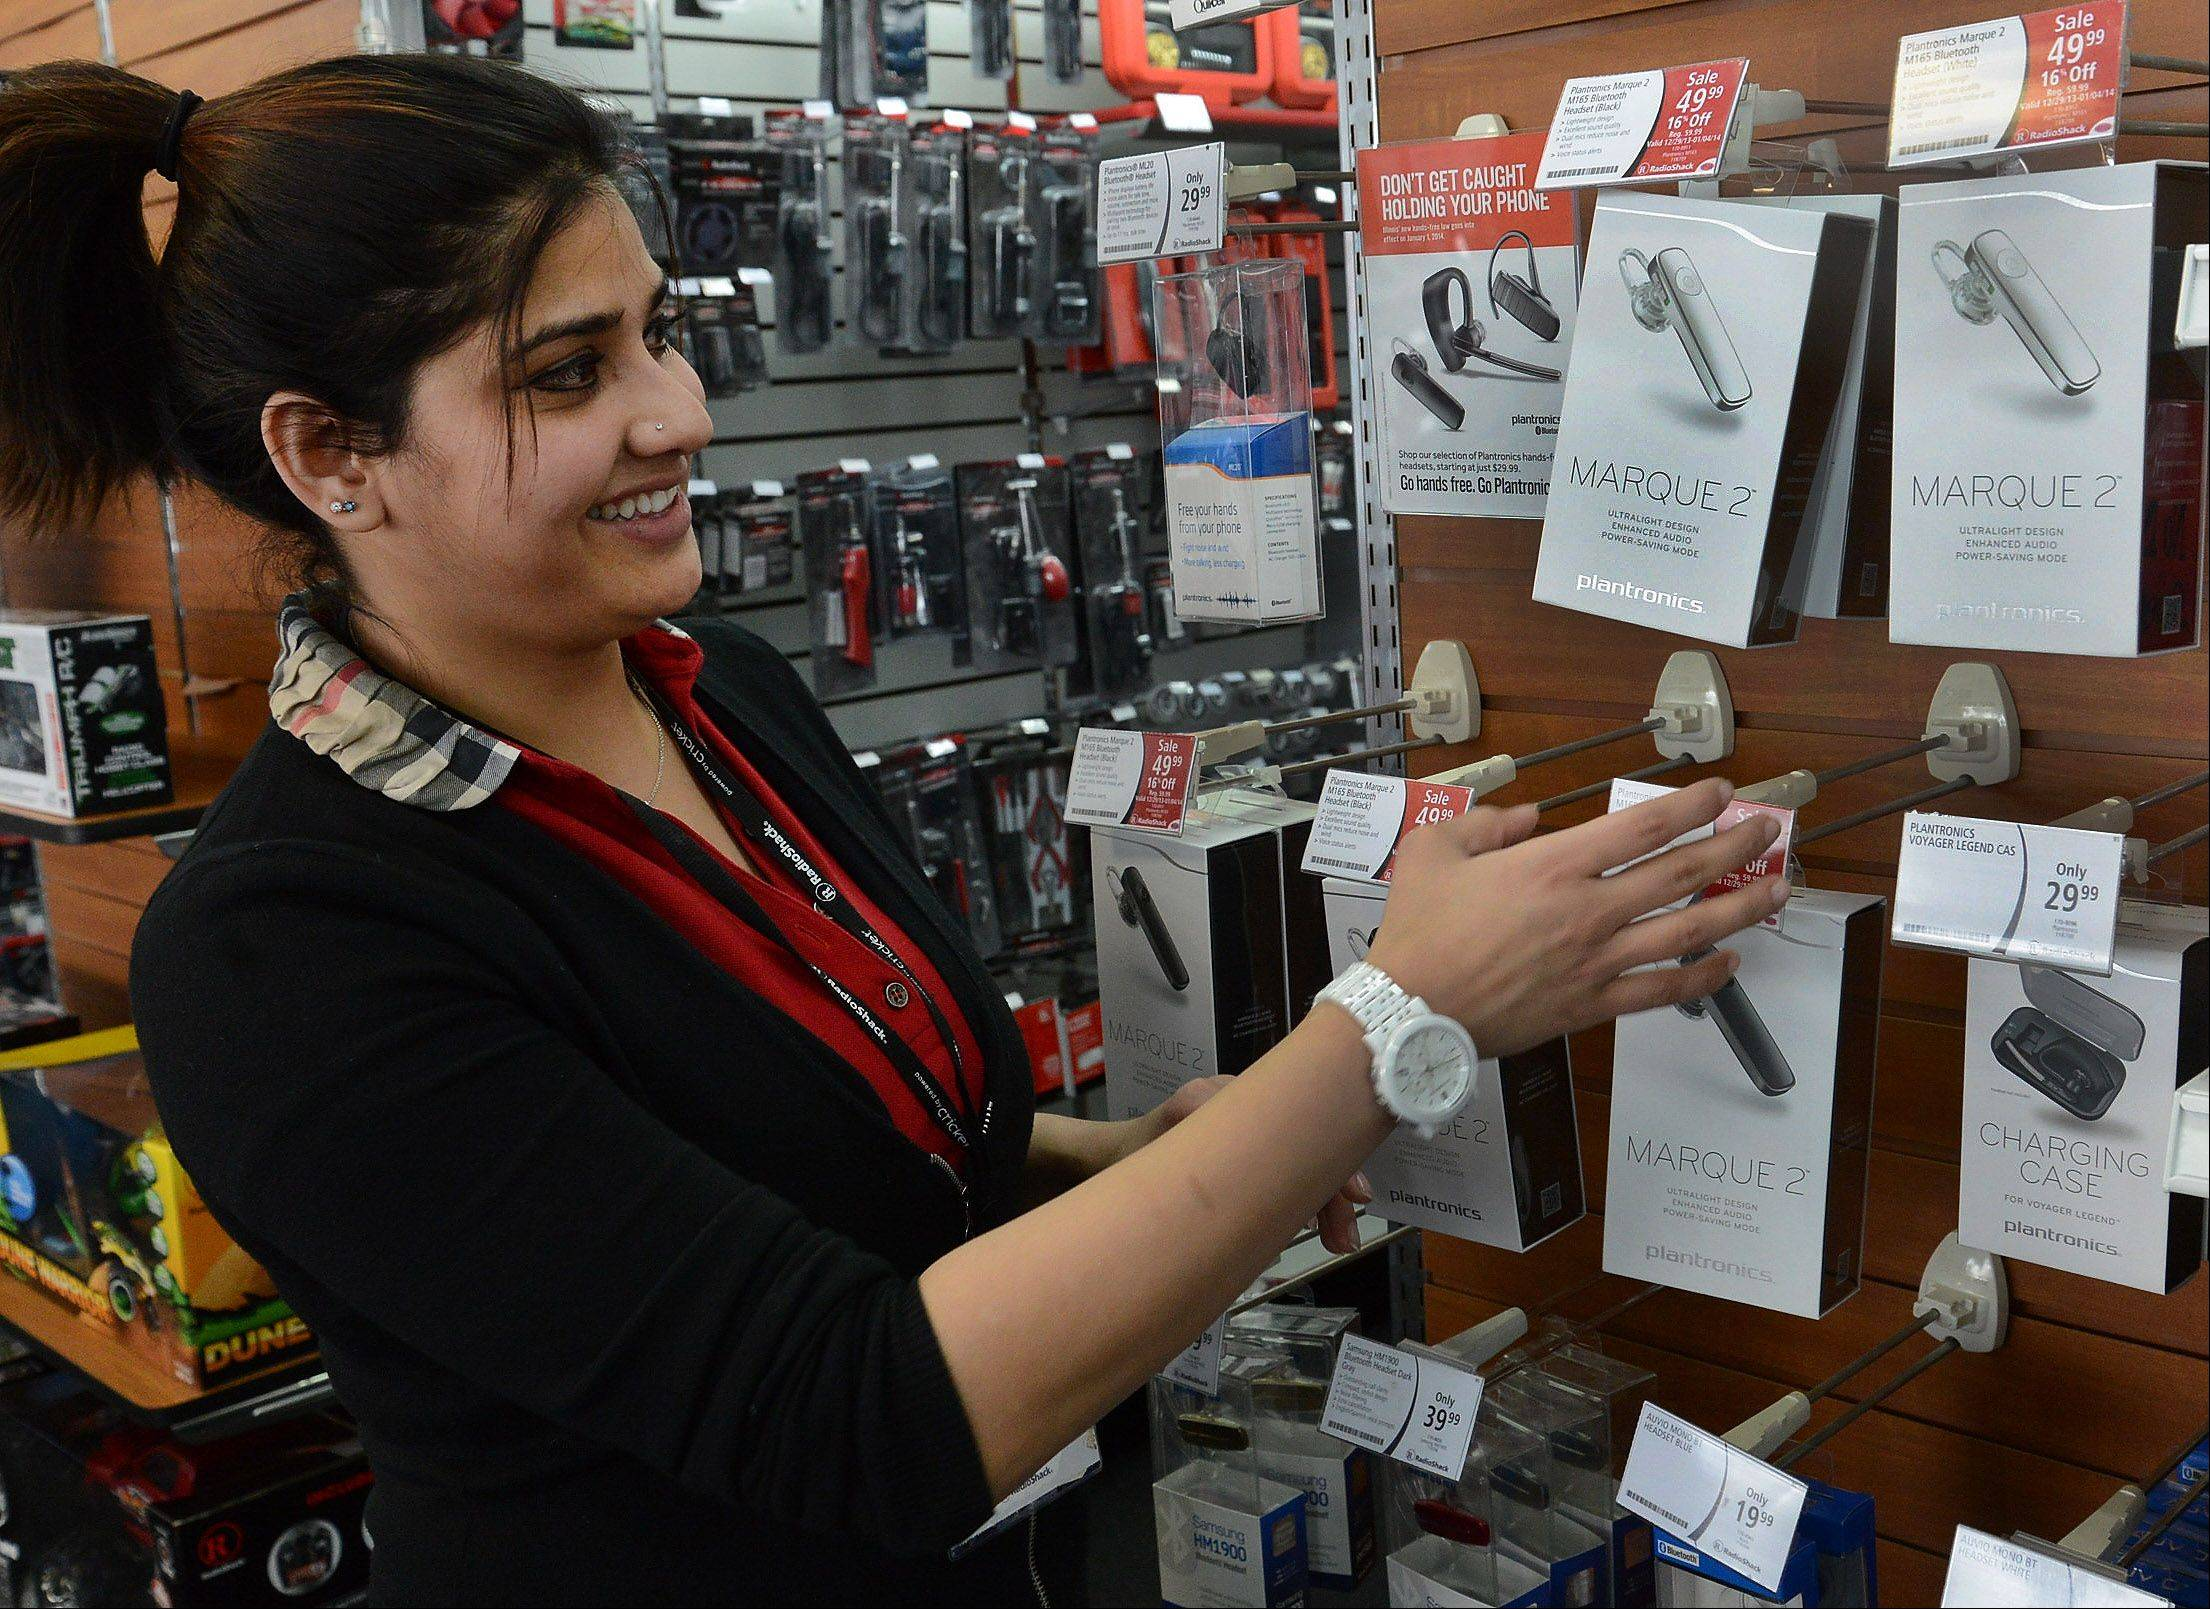 Suburban stores see strong demand for hands-free phone equipment